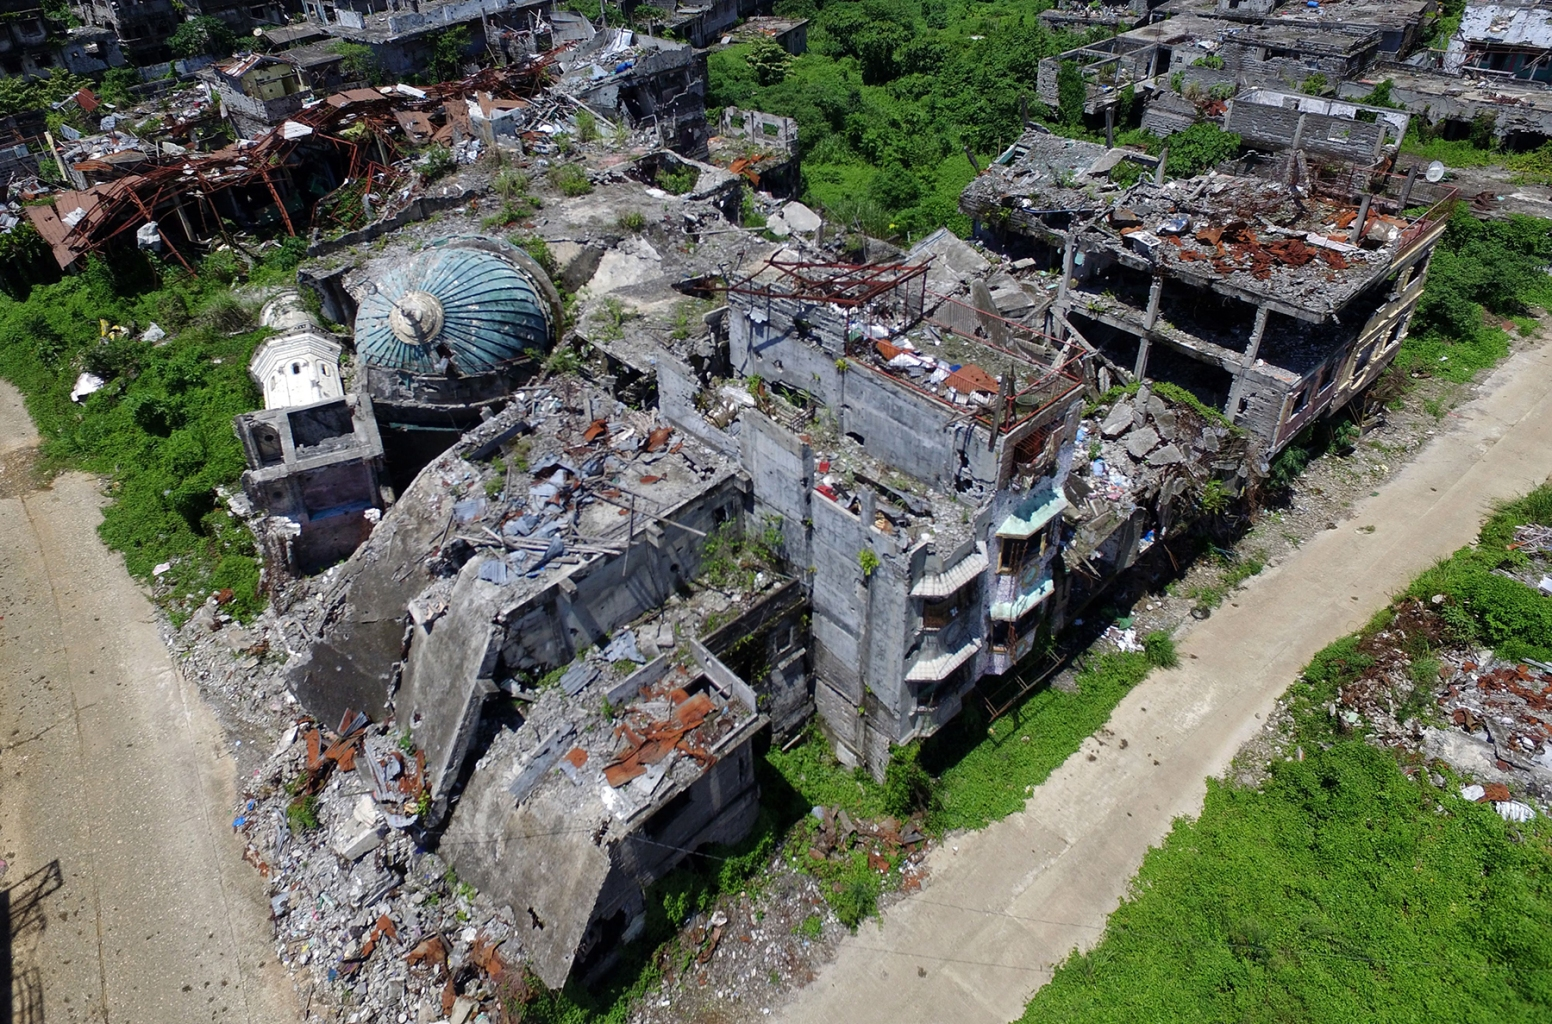 An aerial photo shows a destroyed mosque in Marawi on the southern island of Mindanao on May 23. Two years after the Philippine city of Marawi was overrun by jihadists, it remains in ruins, with experts warning that stalled reconstruction efforts are bolstering the appeal of extremist groups in the region. NOEL CELIS/AFP/Getty Images